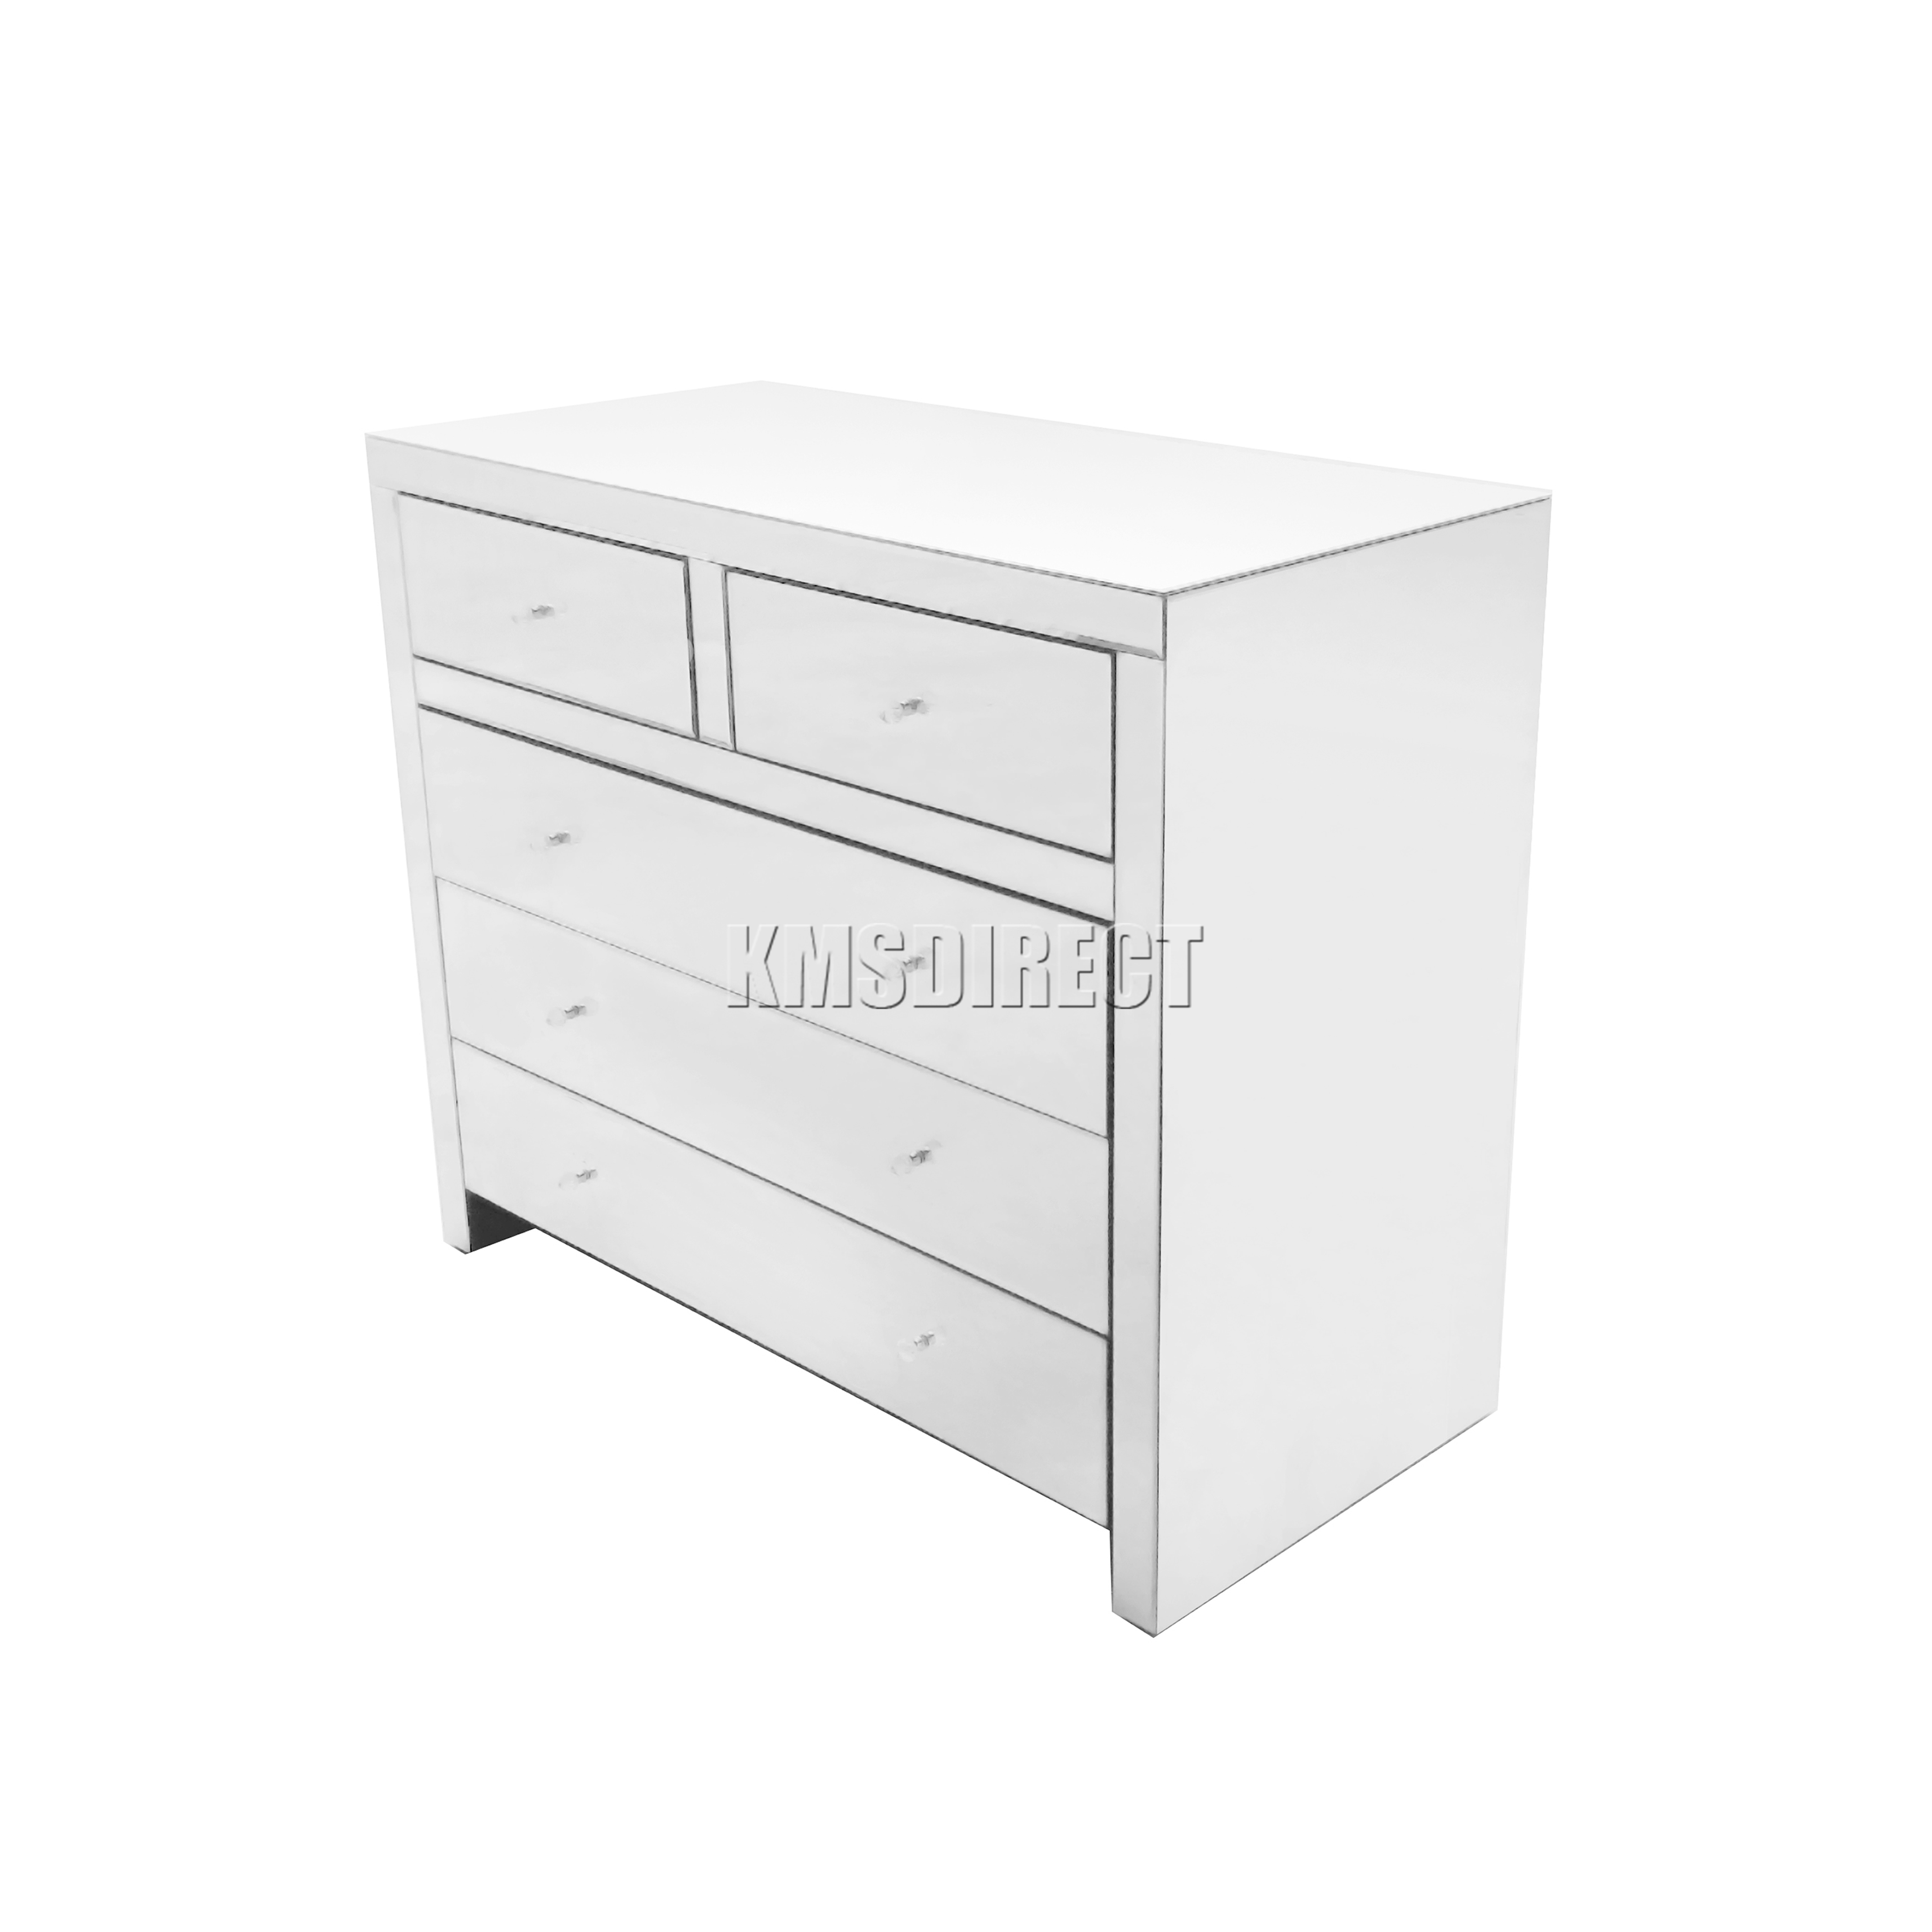 Foxhunter Mirrored Furniture Glass 2 Over 3 Drawer Chest Cabinet Bedroom Mc04 Ebay